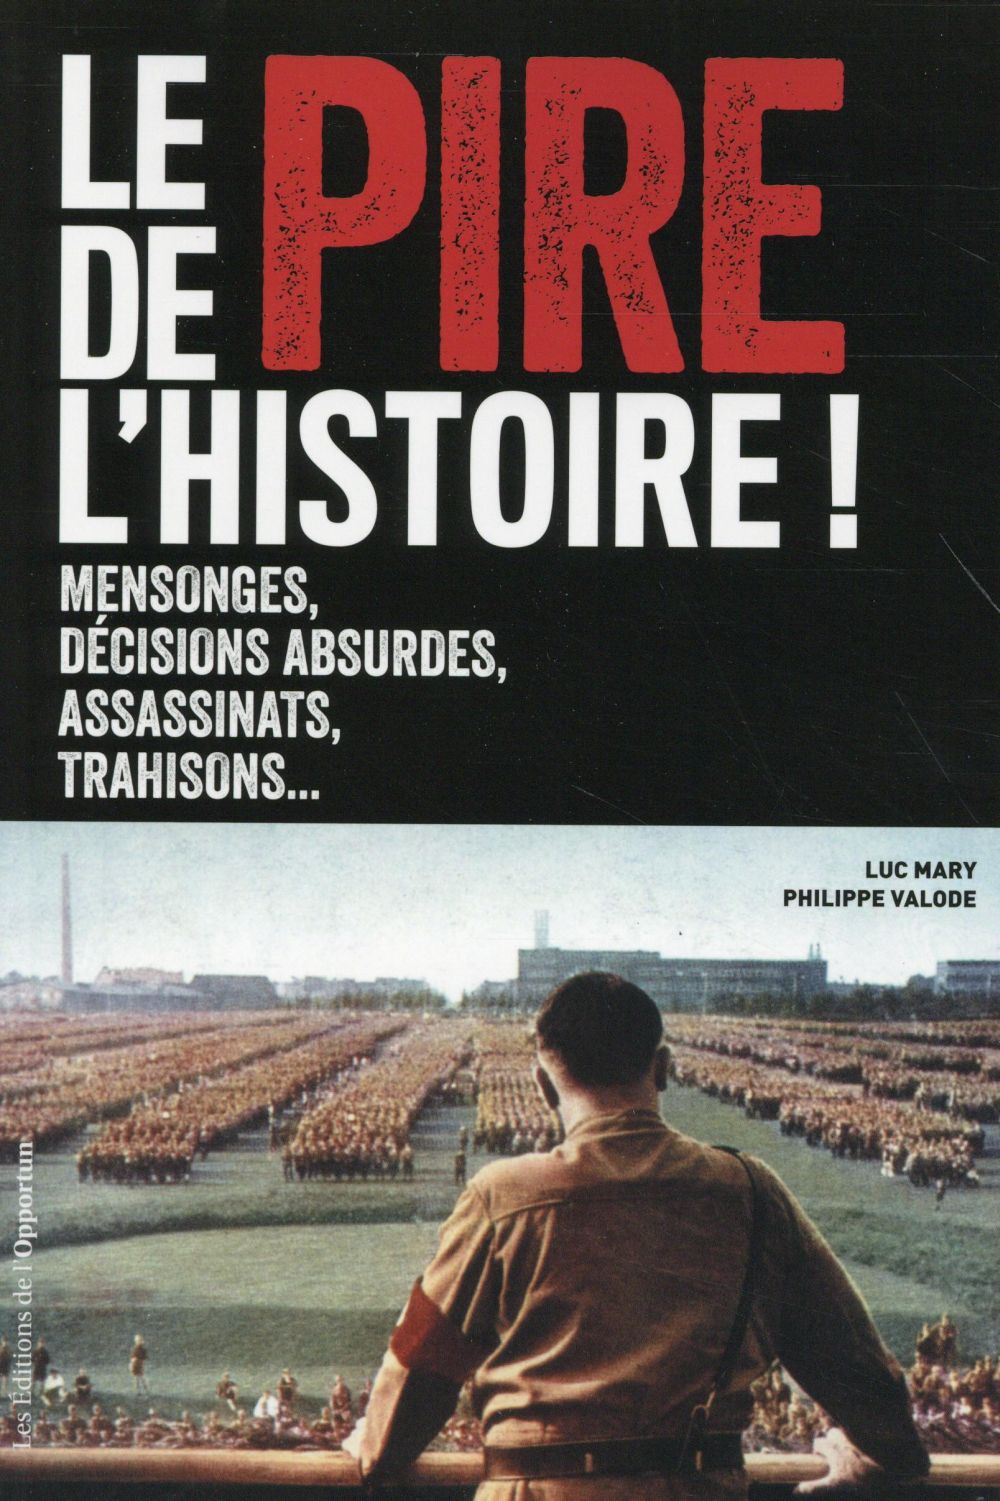 LE PIRE DE L'HISTOIRE! MENSONGES, DECISIONS ABSURDES, ASSASSINATS, TRAHISONS